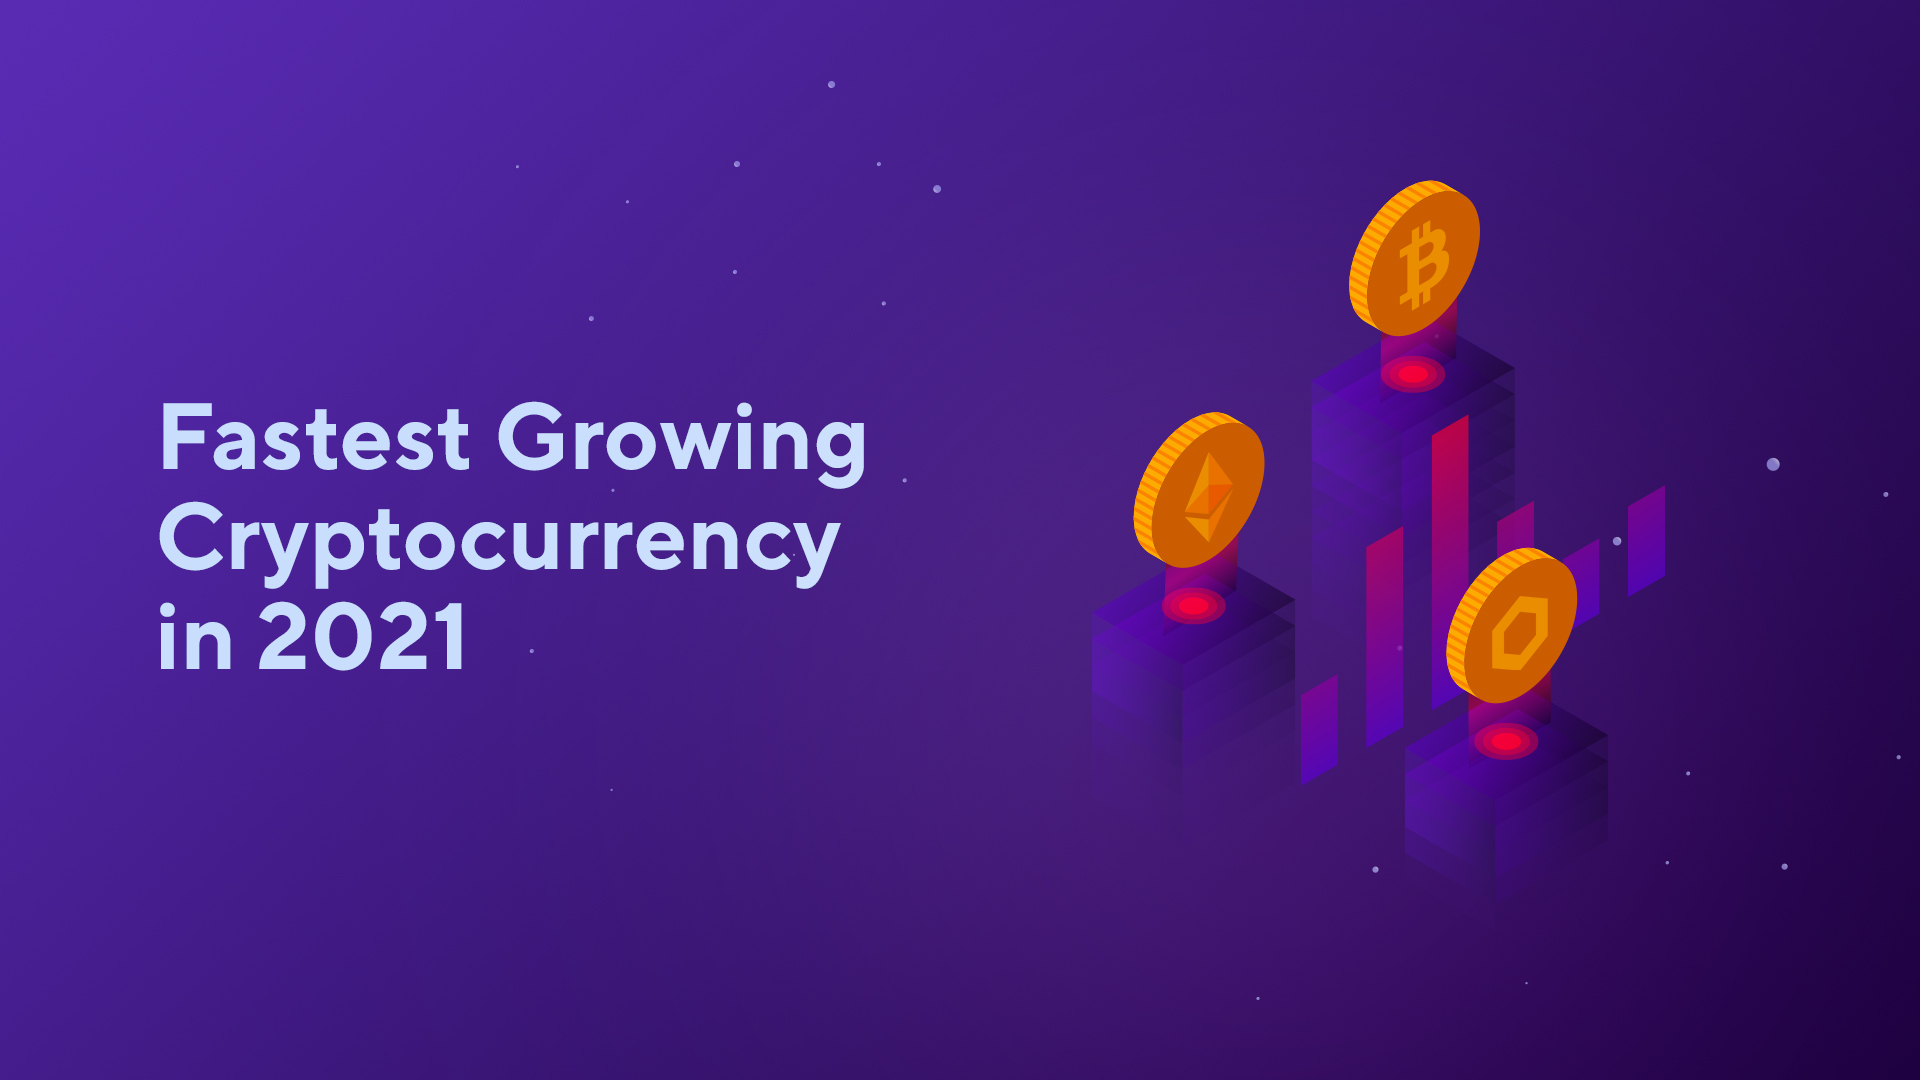 Fastest Growing Cryptocurrency in 2021